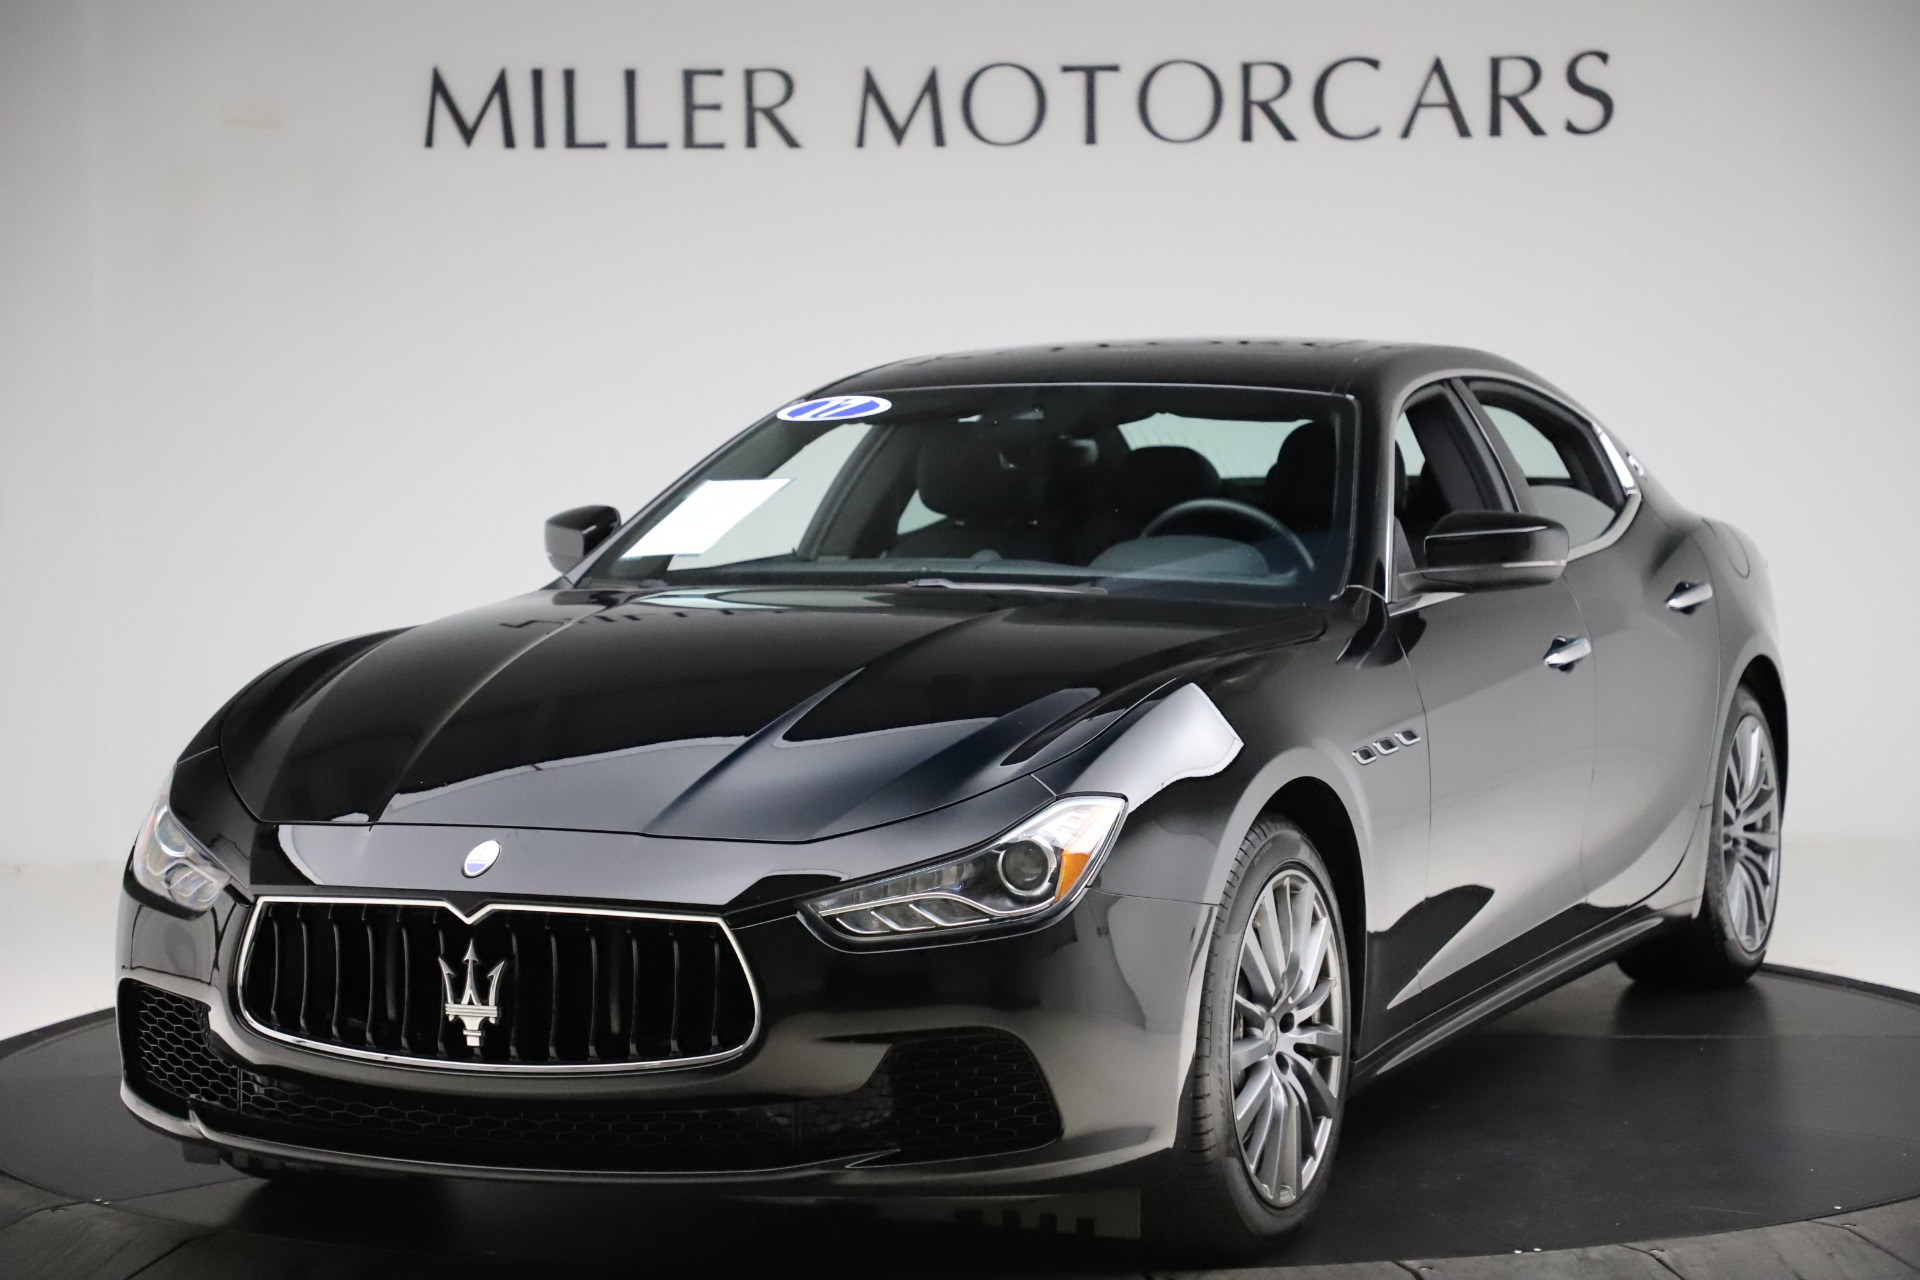 Used 2017 Maserati Ghibli S Q4 for sale $41,900 at Bentley Greenwich in Greenwich CT 06830 1